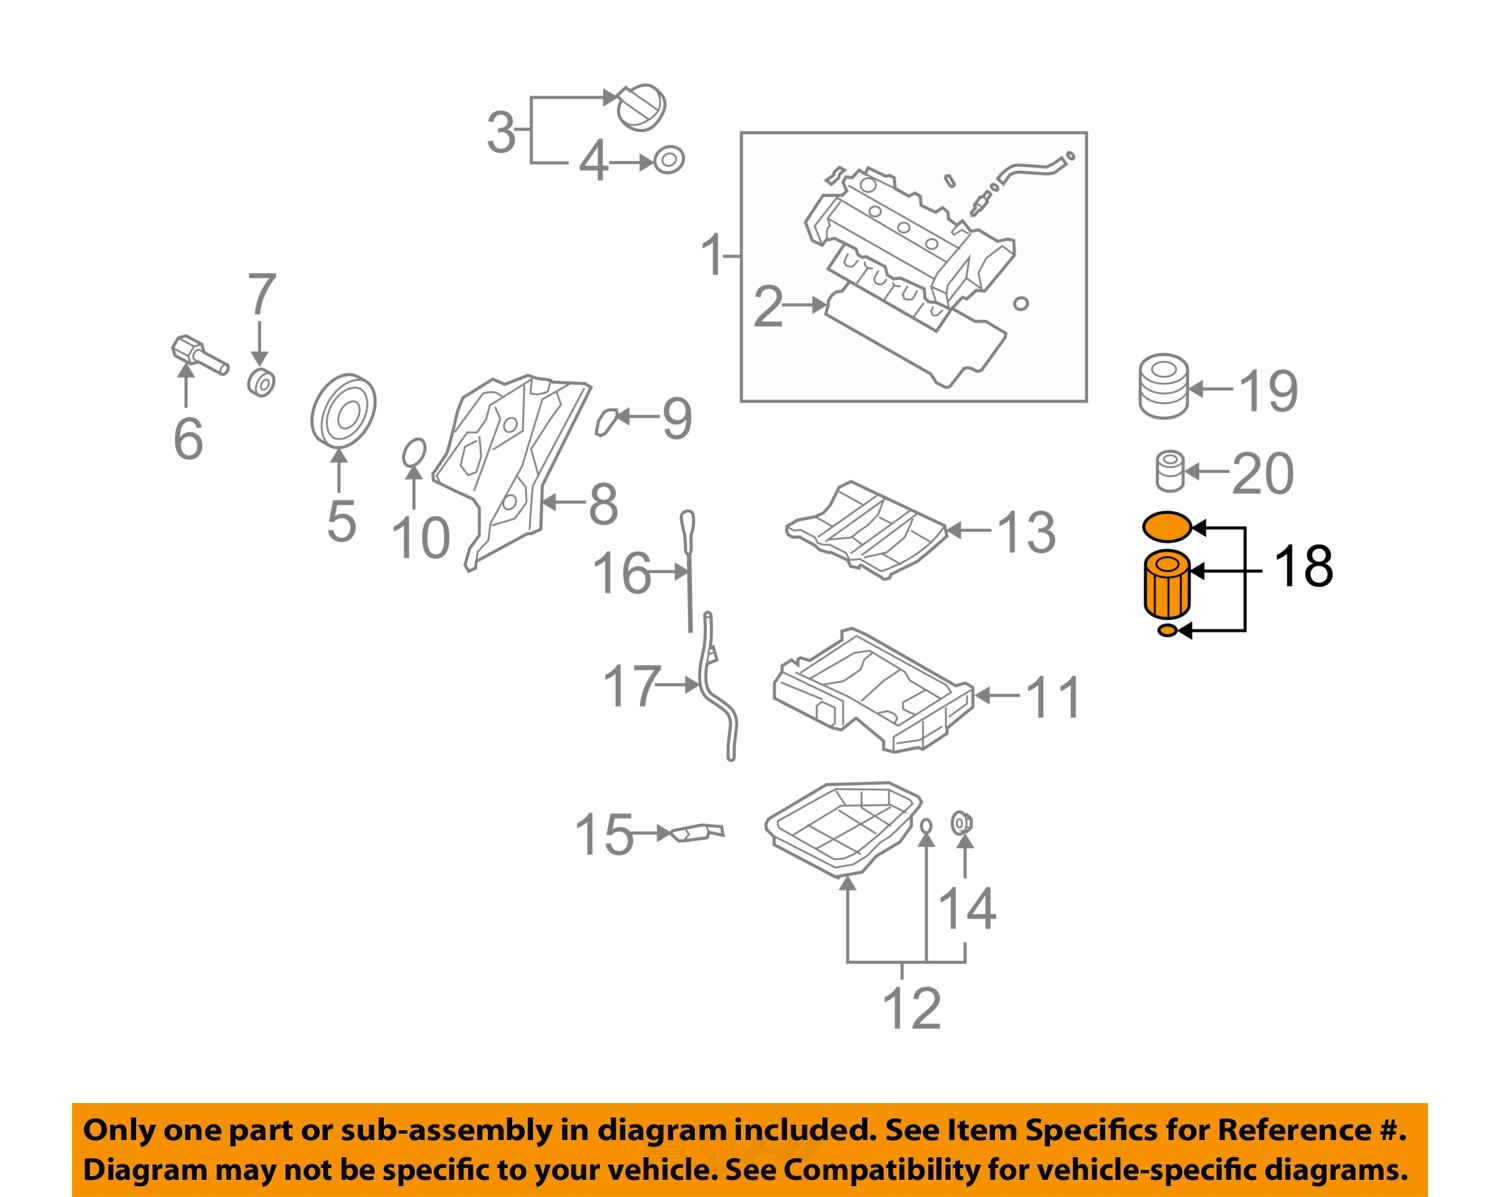 hight resolution of  18 on diagram only genuine oe factory original item